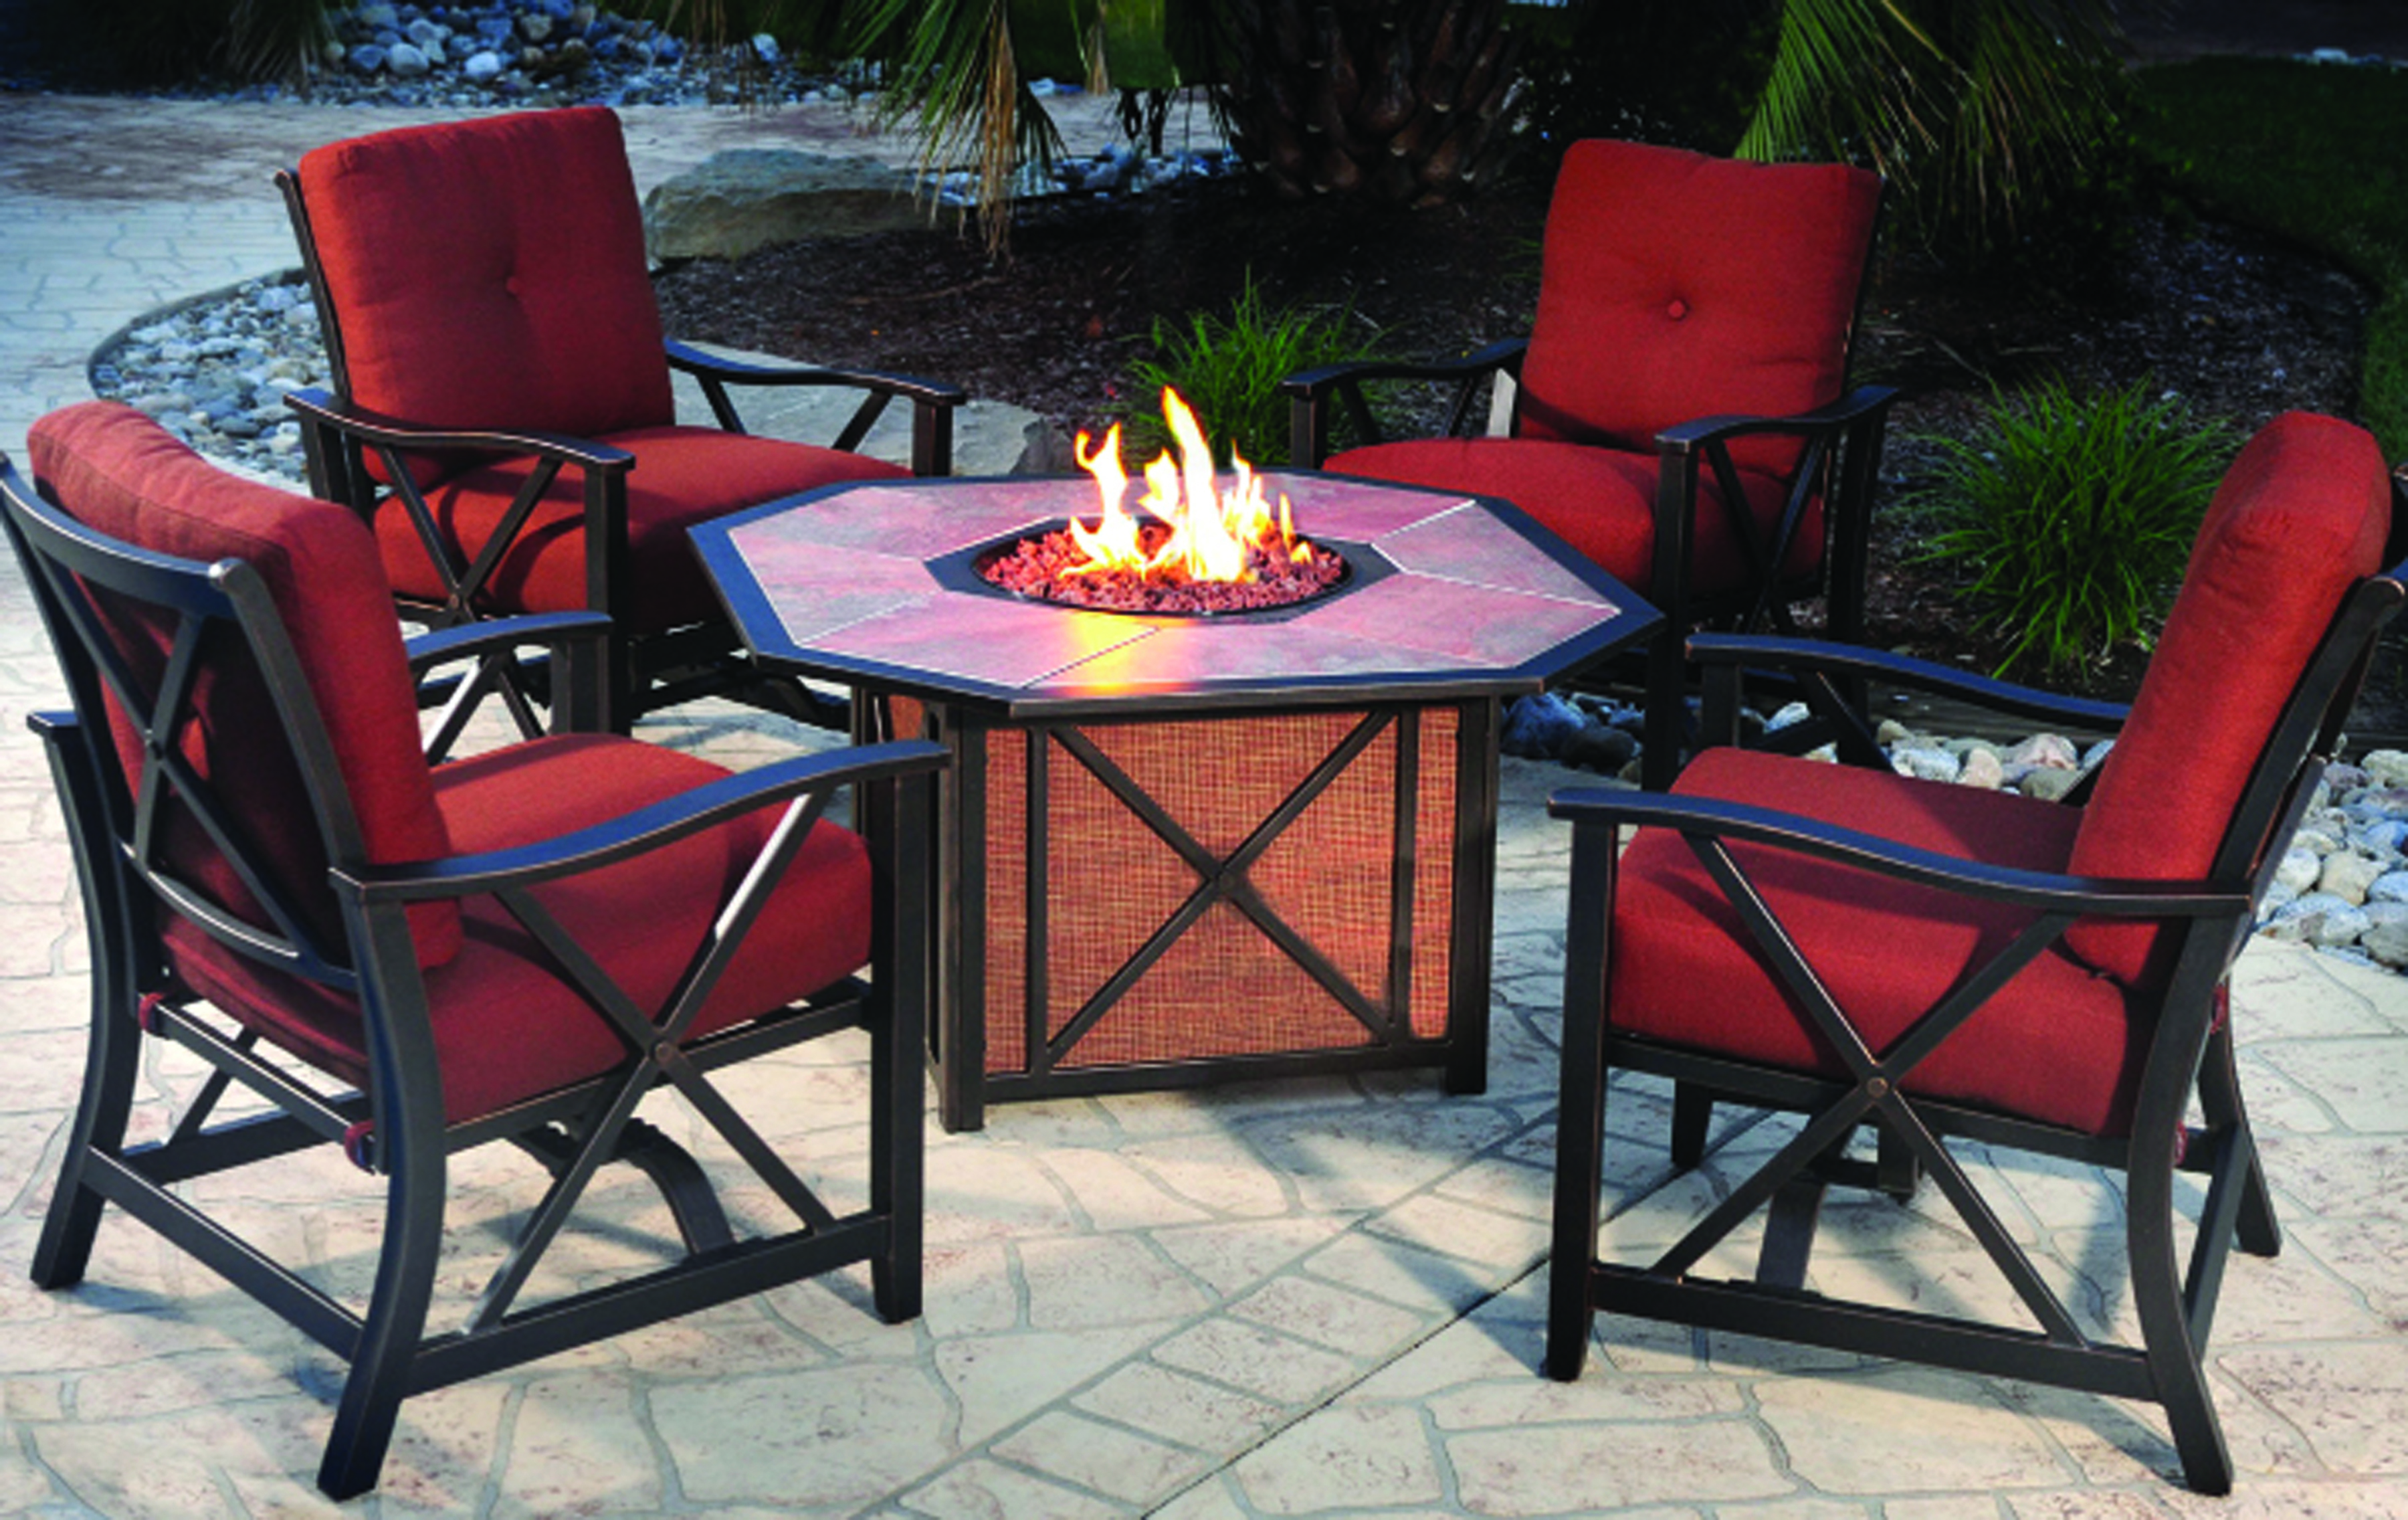 fireplace and firepit